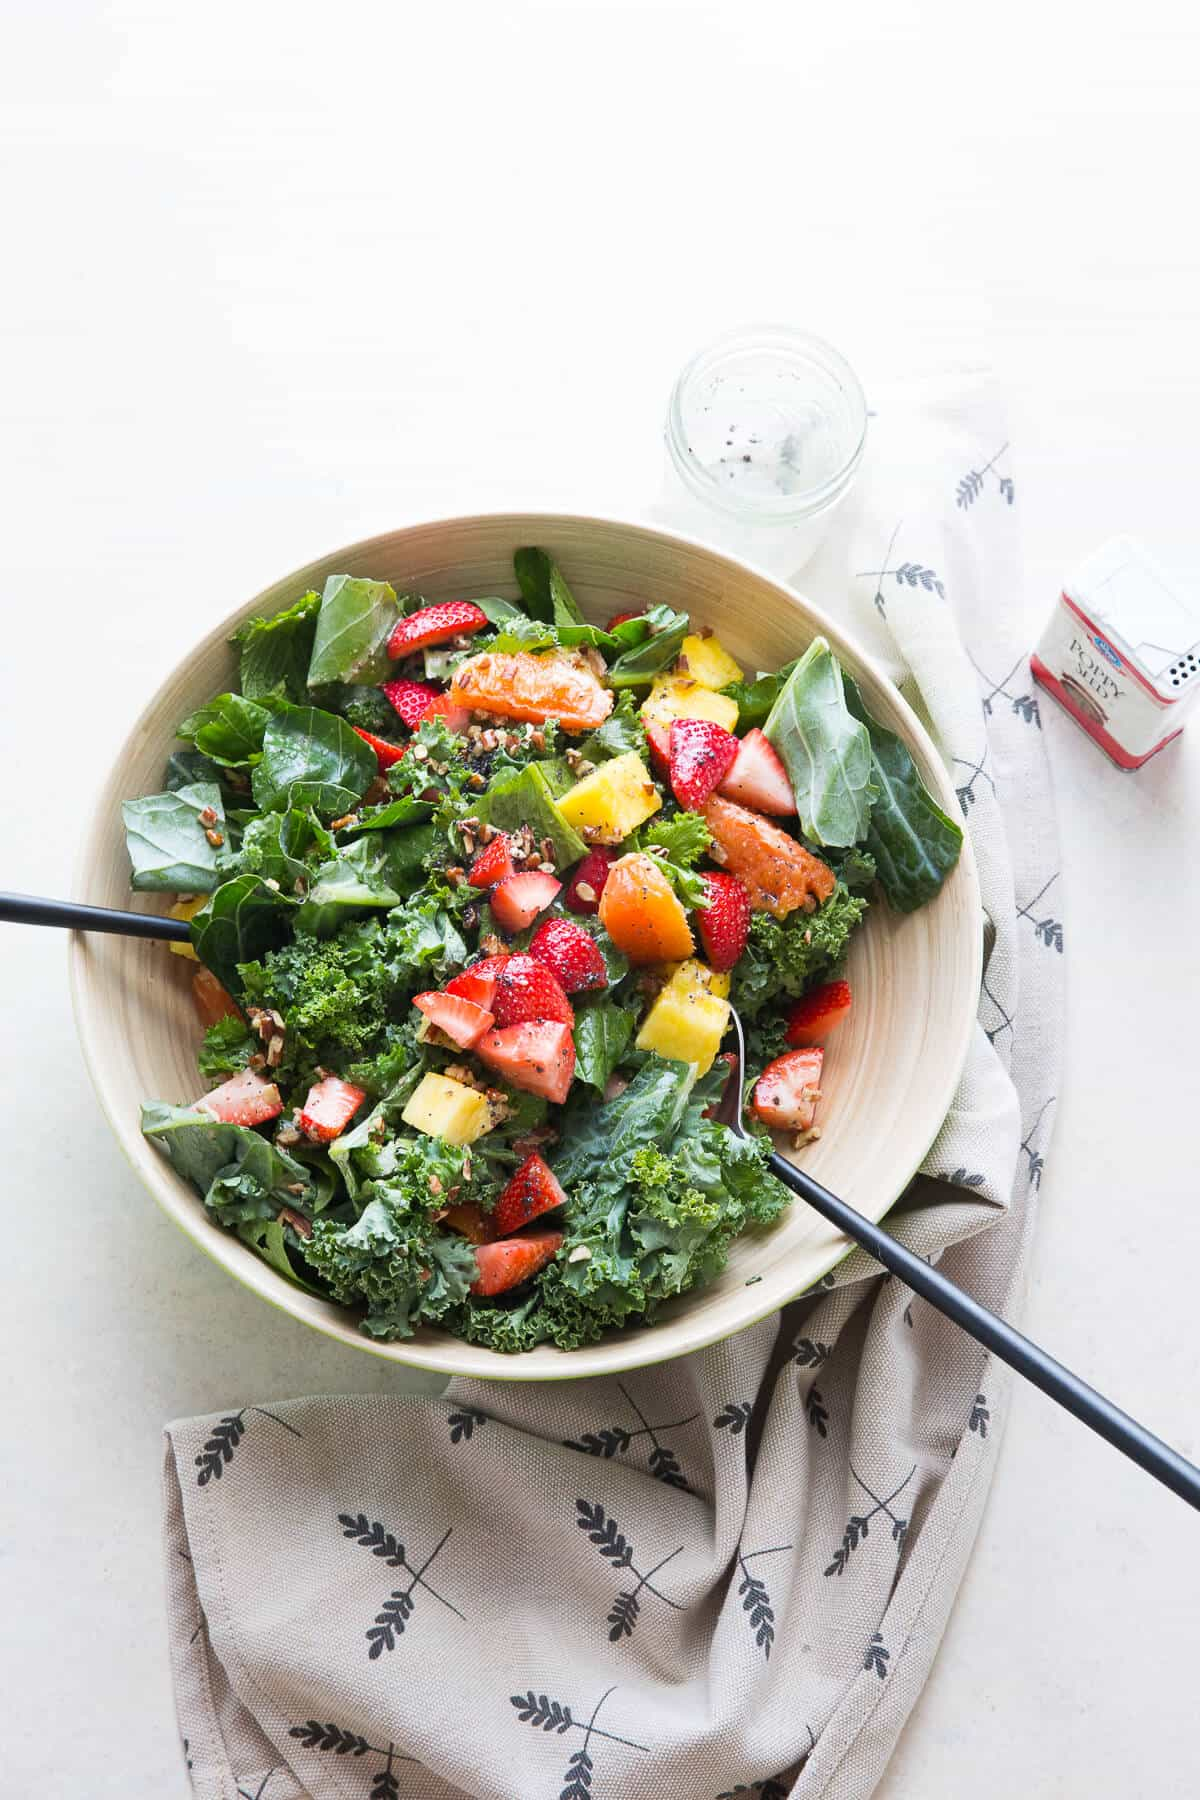 This citrus salad features juicy, fresh fruit and lots of greens! It is fresh and delicious!